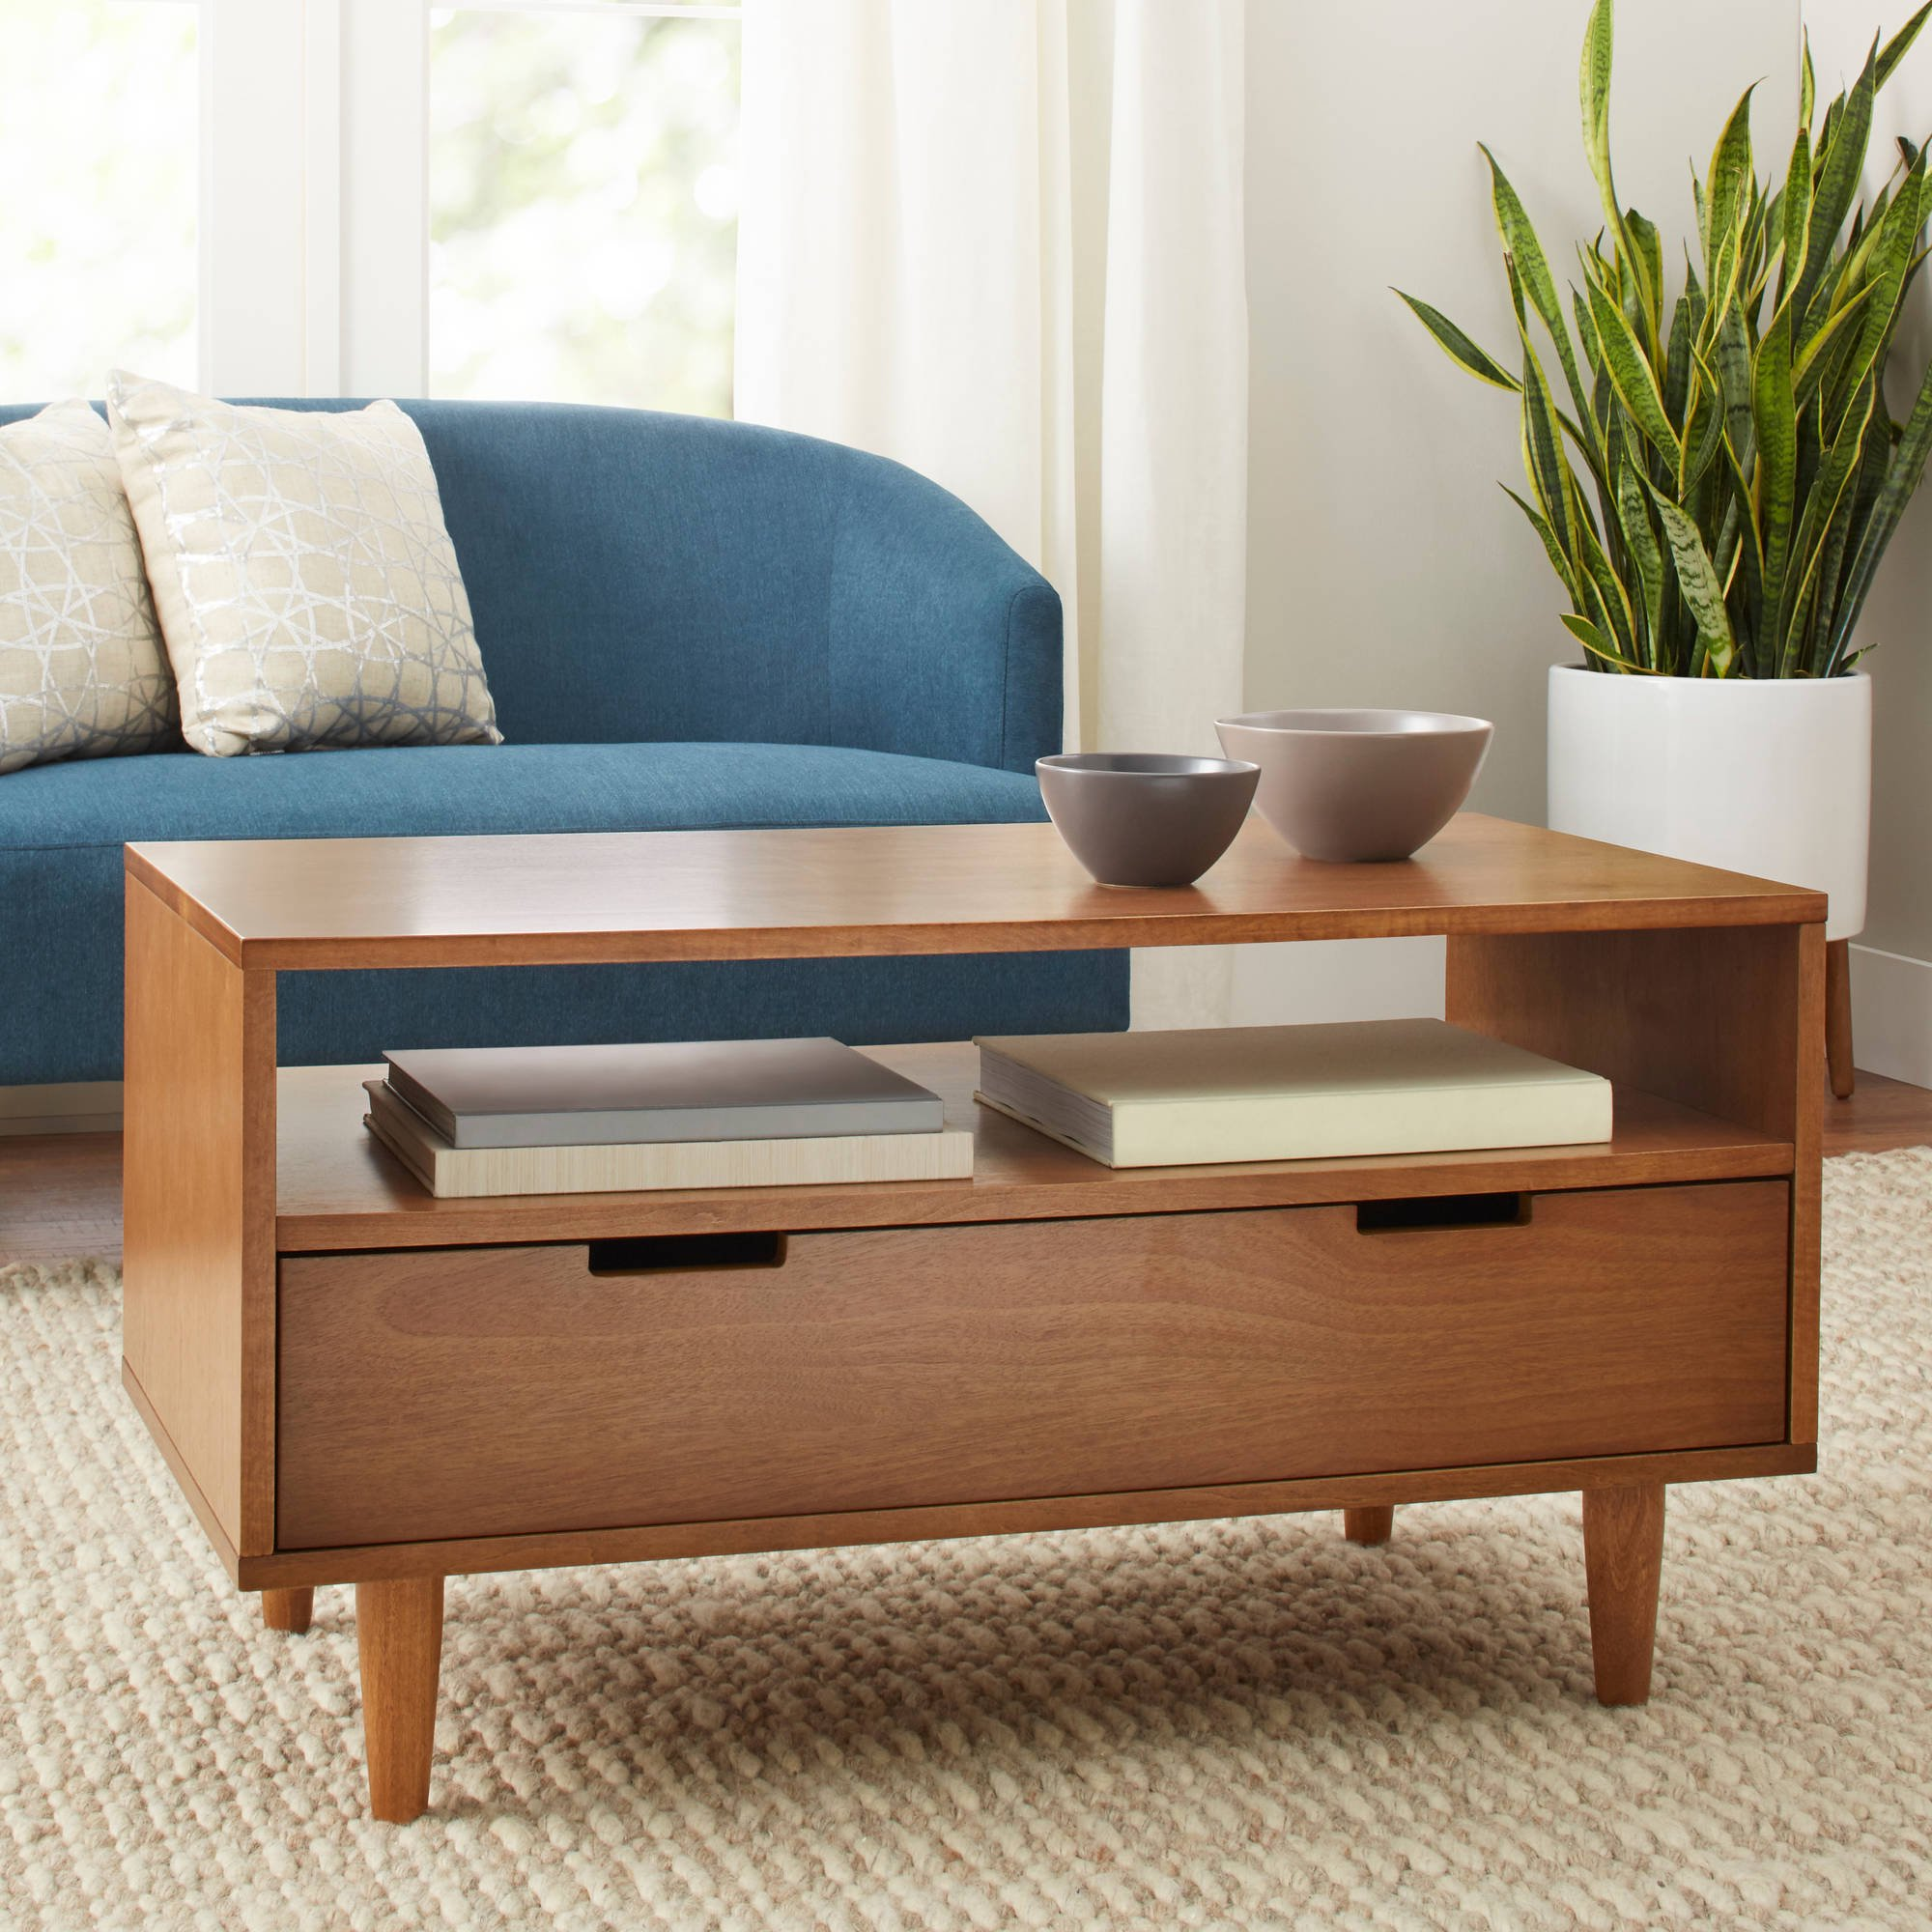 Better Homes U0026 Gardens Flynn Mid Century Modern Coffee Table, Pecan